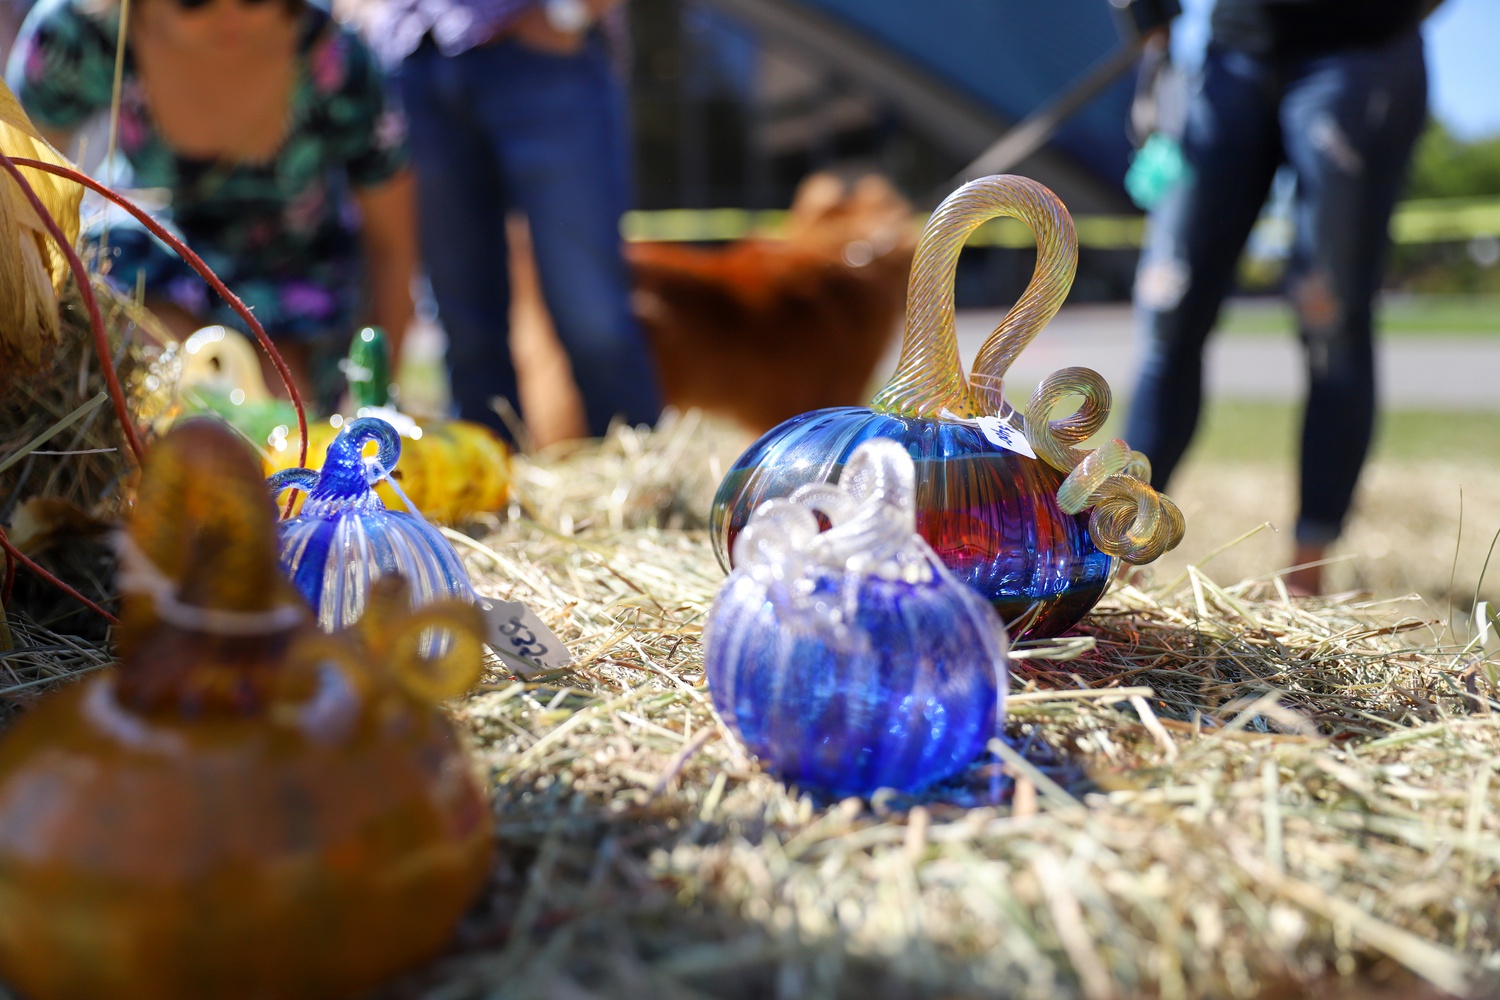 """Production of the hand-blown glass pumpkins occurs consistently throughout the year in order to produce 2,000 pumpkins for the annual September """"pumpkin patch""""."""